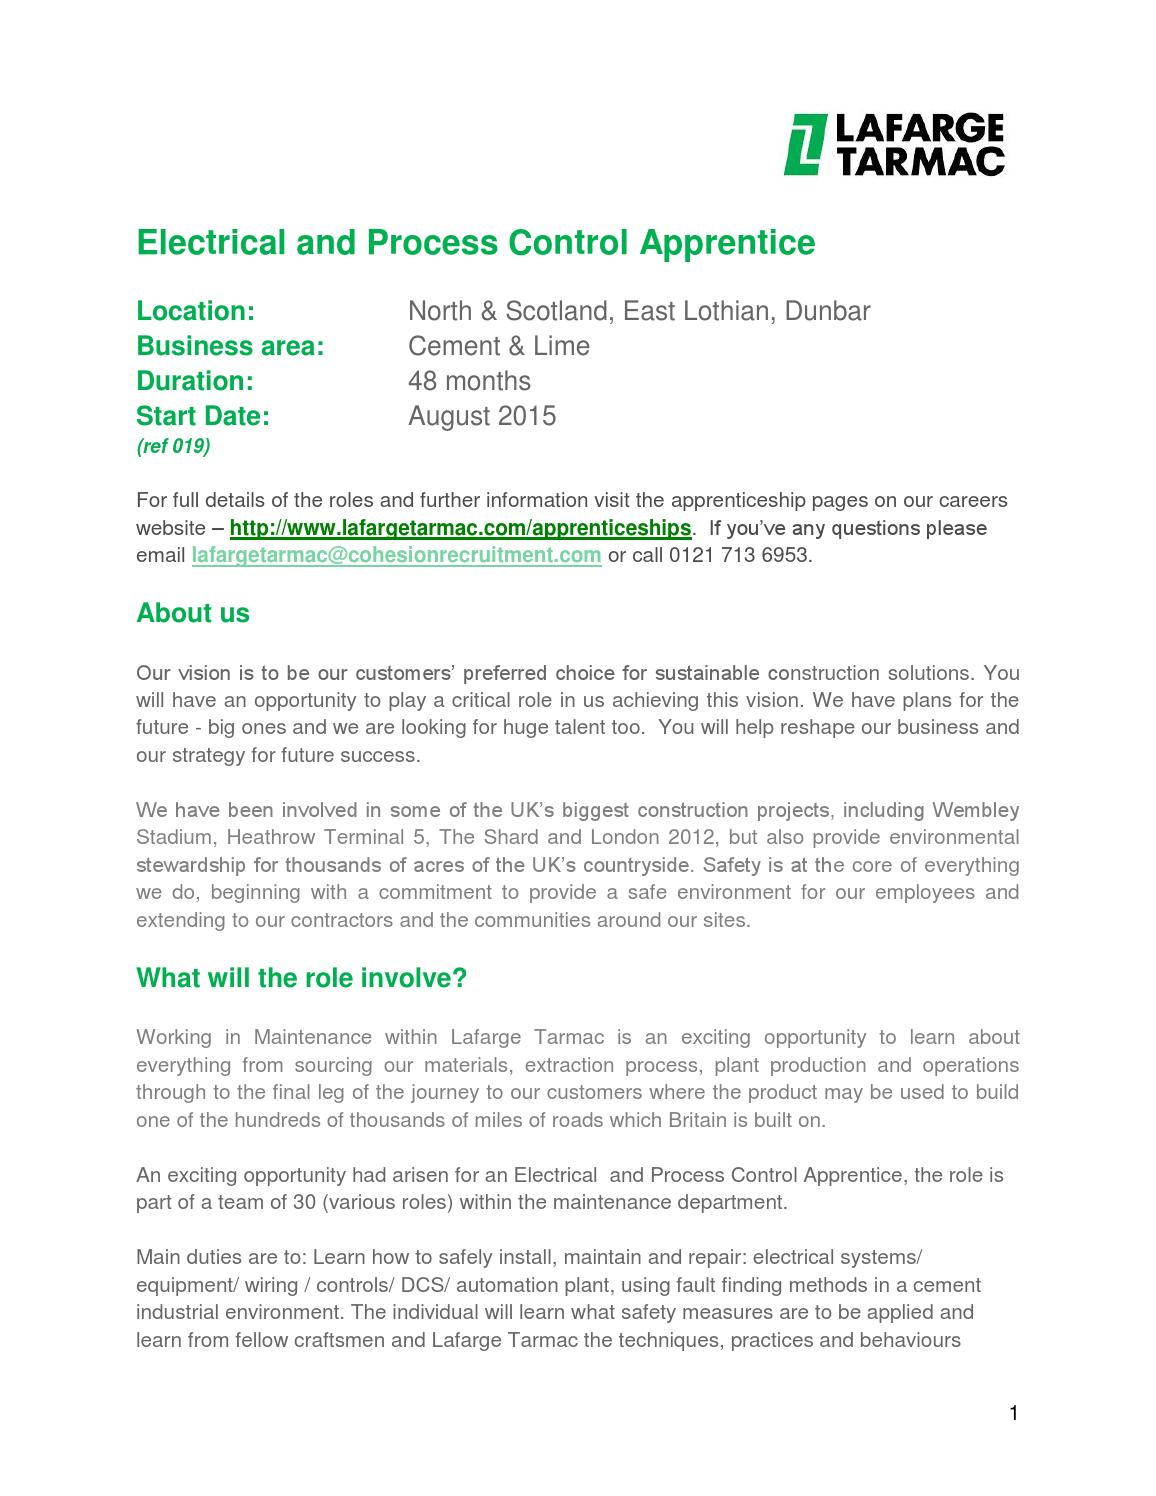 Electrical and process control apprentice advert dunbar by